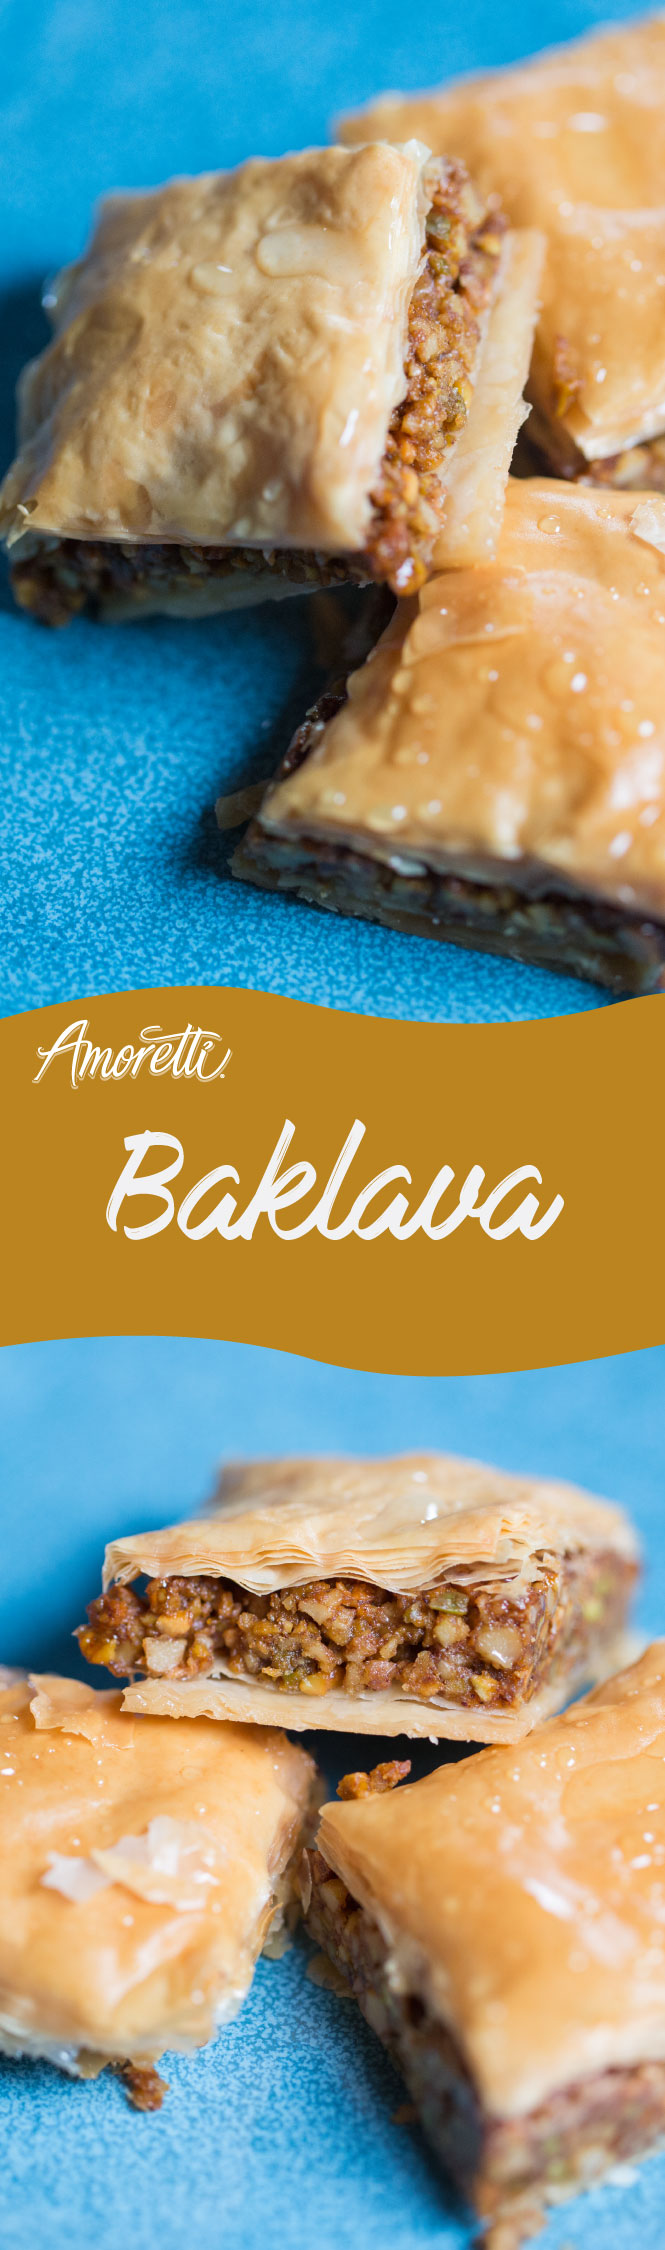 Indulge in sweet, nutty Baklava!